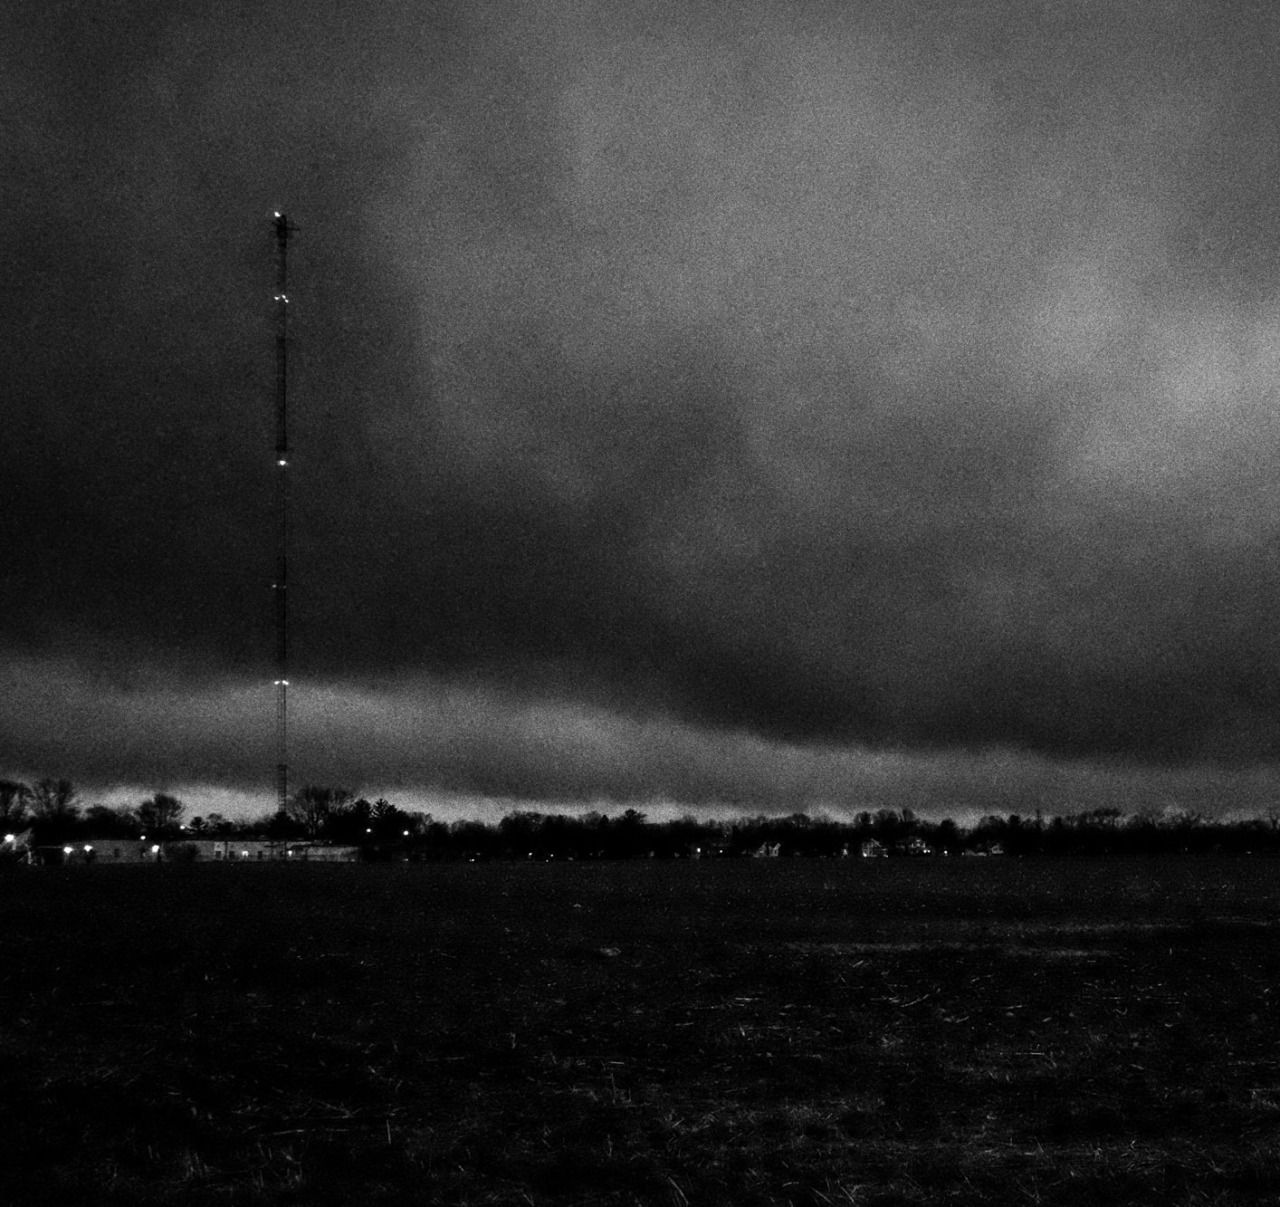 enskog:  https://soundcloud.com/iisdn/shortwave-radio-set-04-18-2015this is a direct recording (that is, recorded from the source, not a radio) of some music i played over a homemade shortwave radio transmitter in ontario, canada. i have no idea of the geographical reach it had, but it was a 45 watt transmitter. i wonder if anyone even heard it? it was mostly a proof of concept - something to do for fun. solder, heat, resistors, transistors, electricity, vibrations, atmosphere. don't expect…